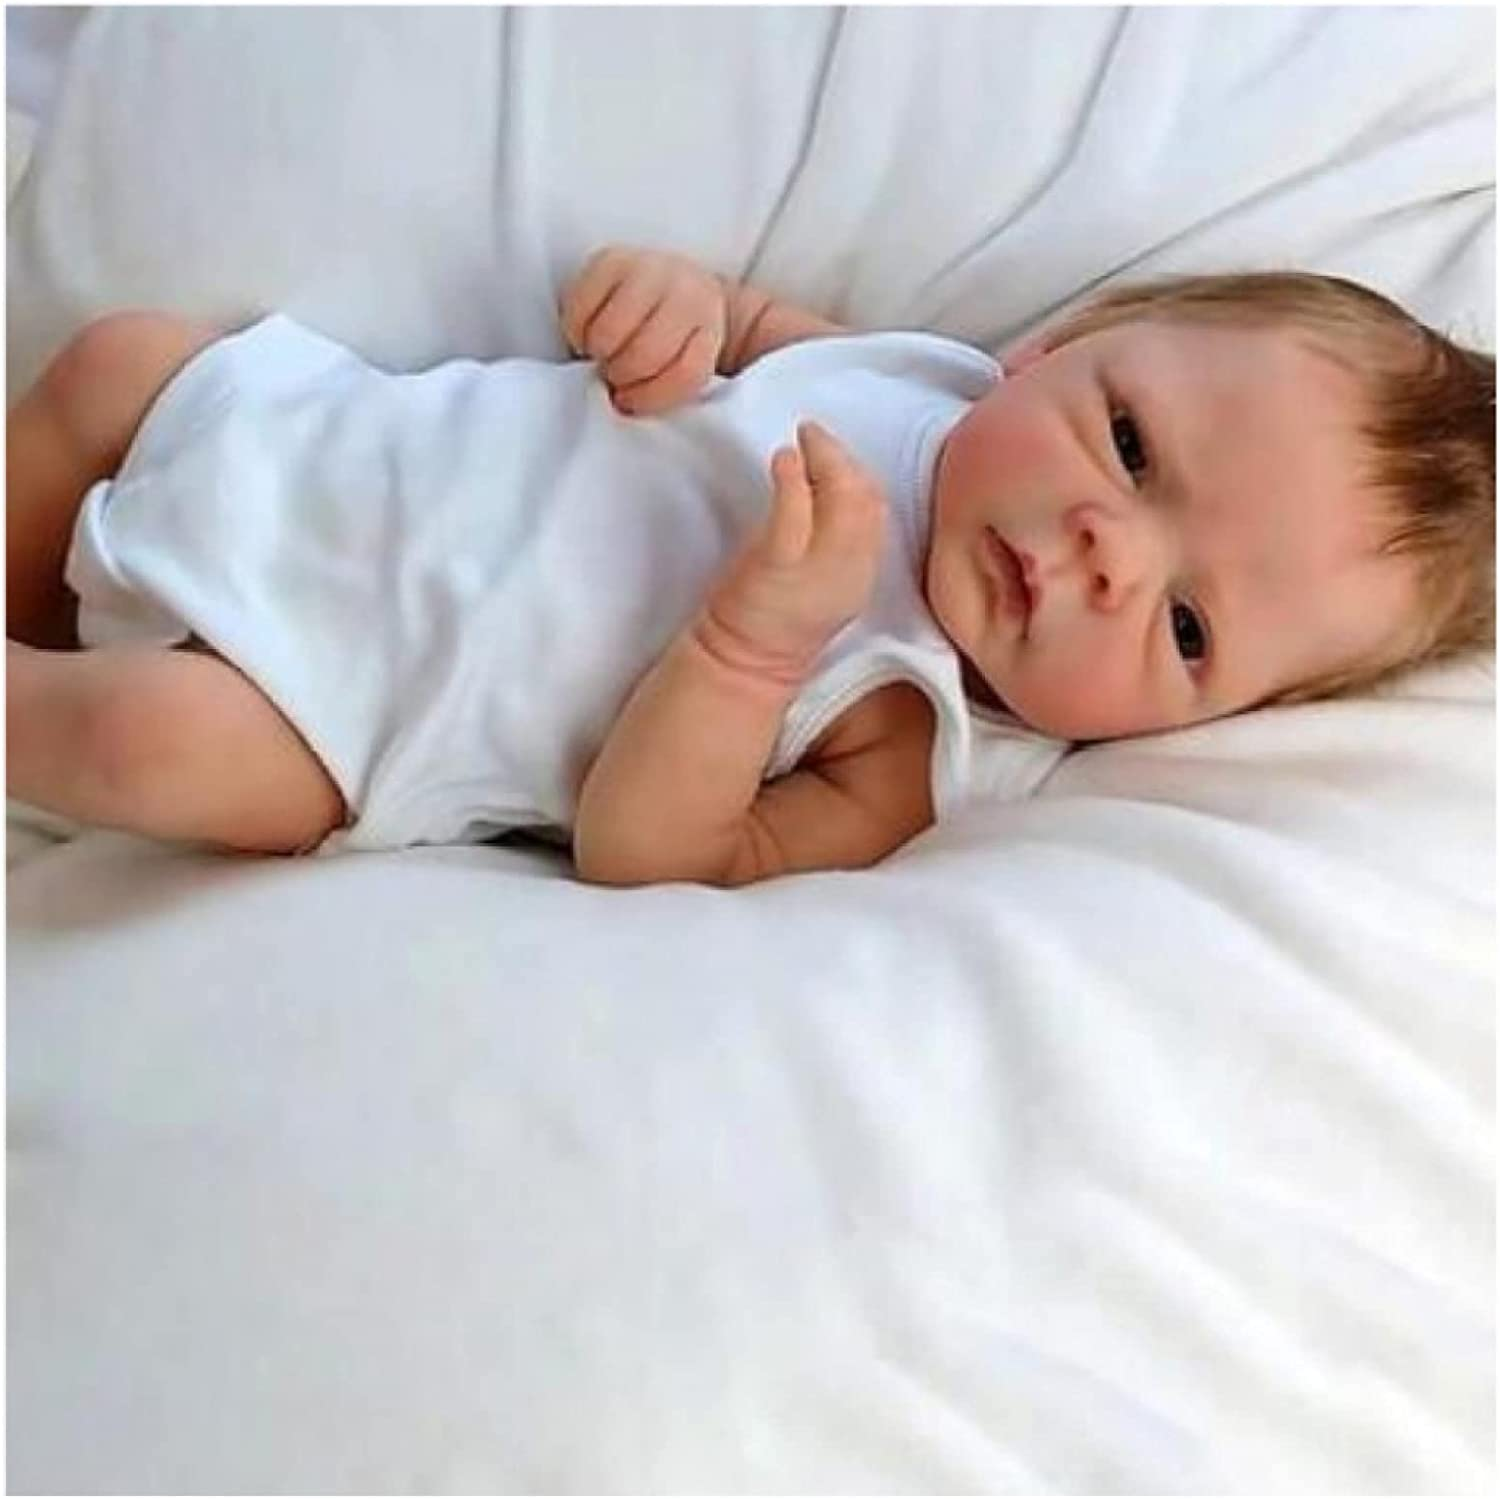 Qiang Silicone Baby Doll - New Free Shipping Cheap mail order sales 46cm Reality Re Free Adult PVC